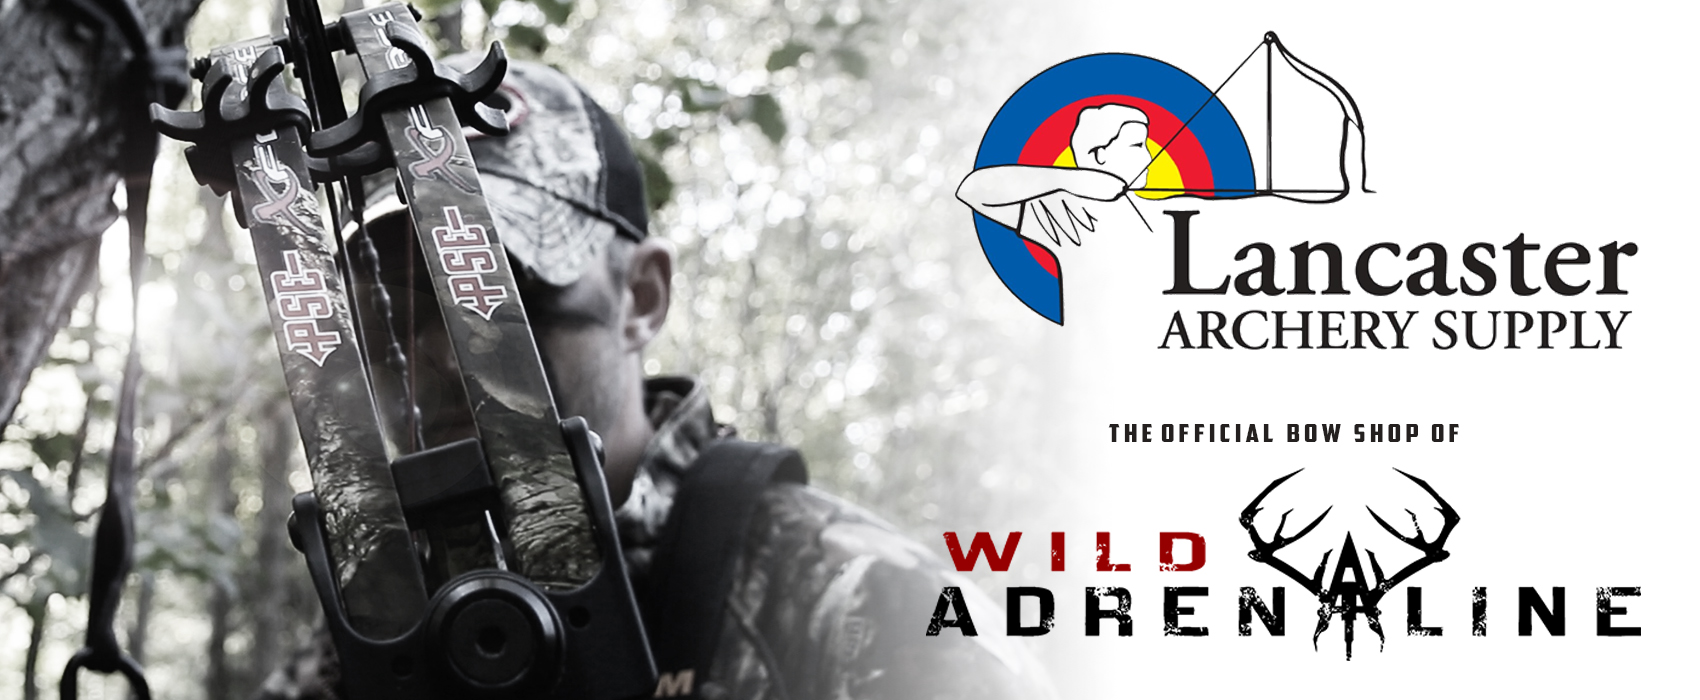 LANCASTER ARCHERY SUPPLY wild adrenaline